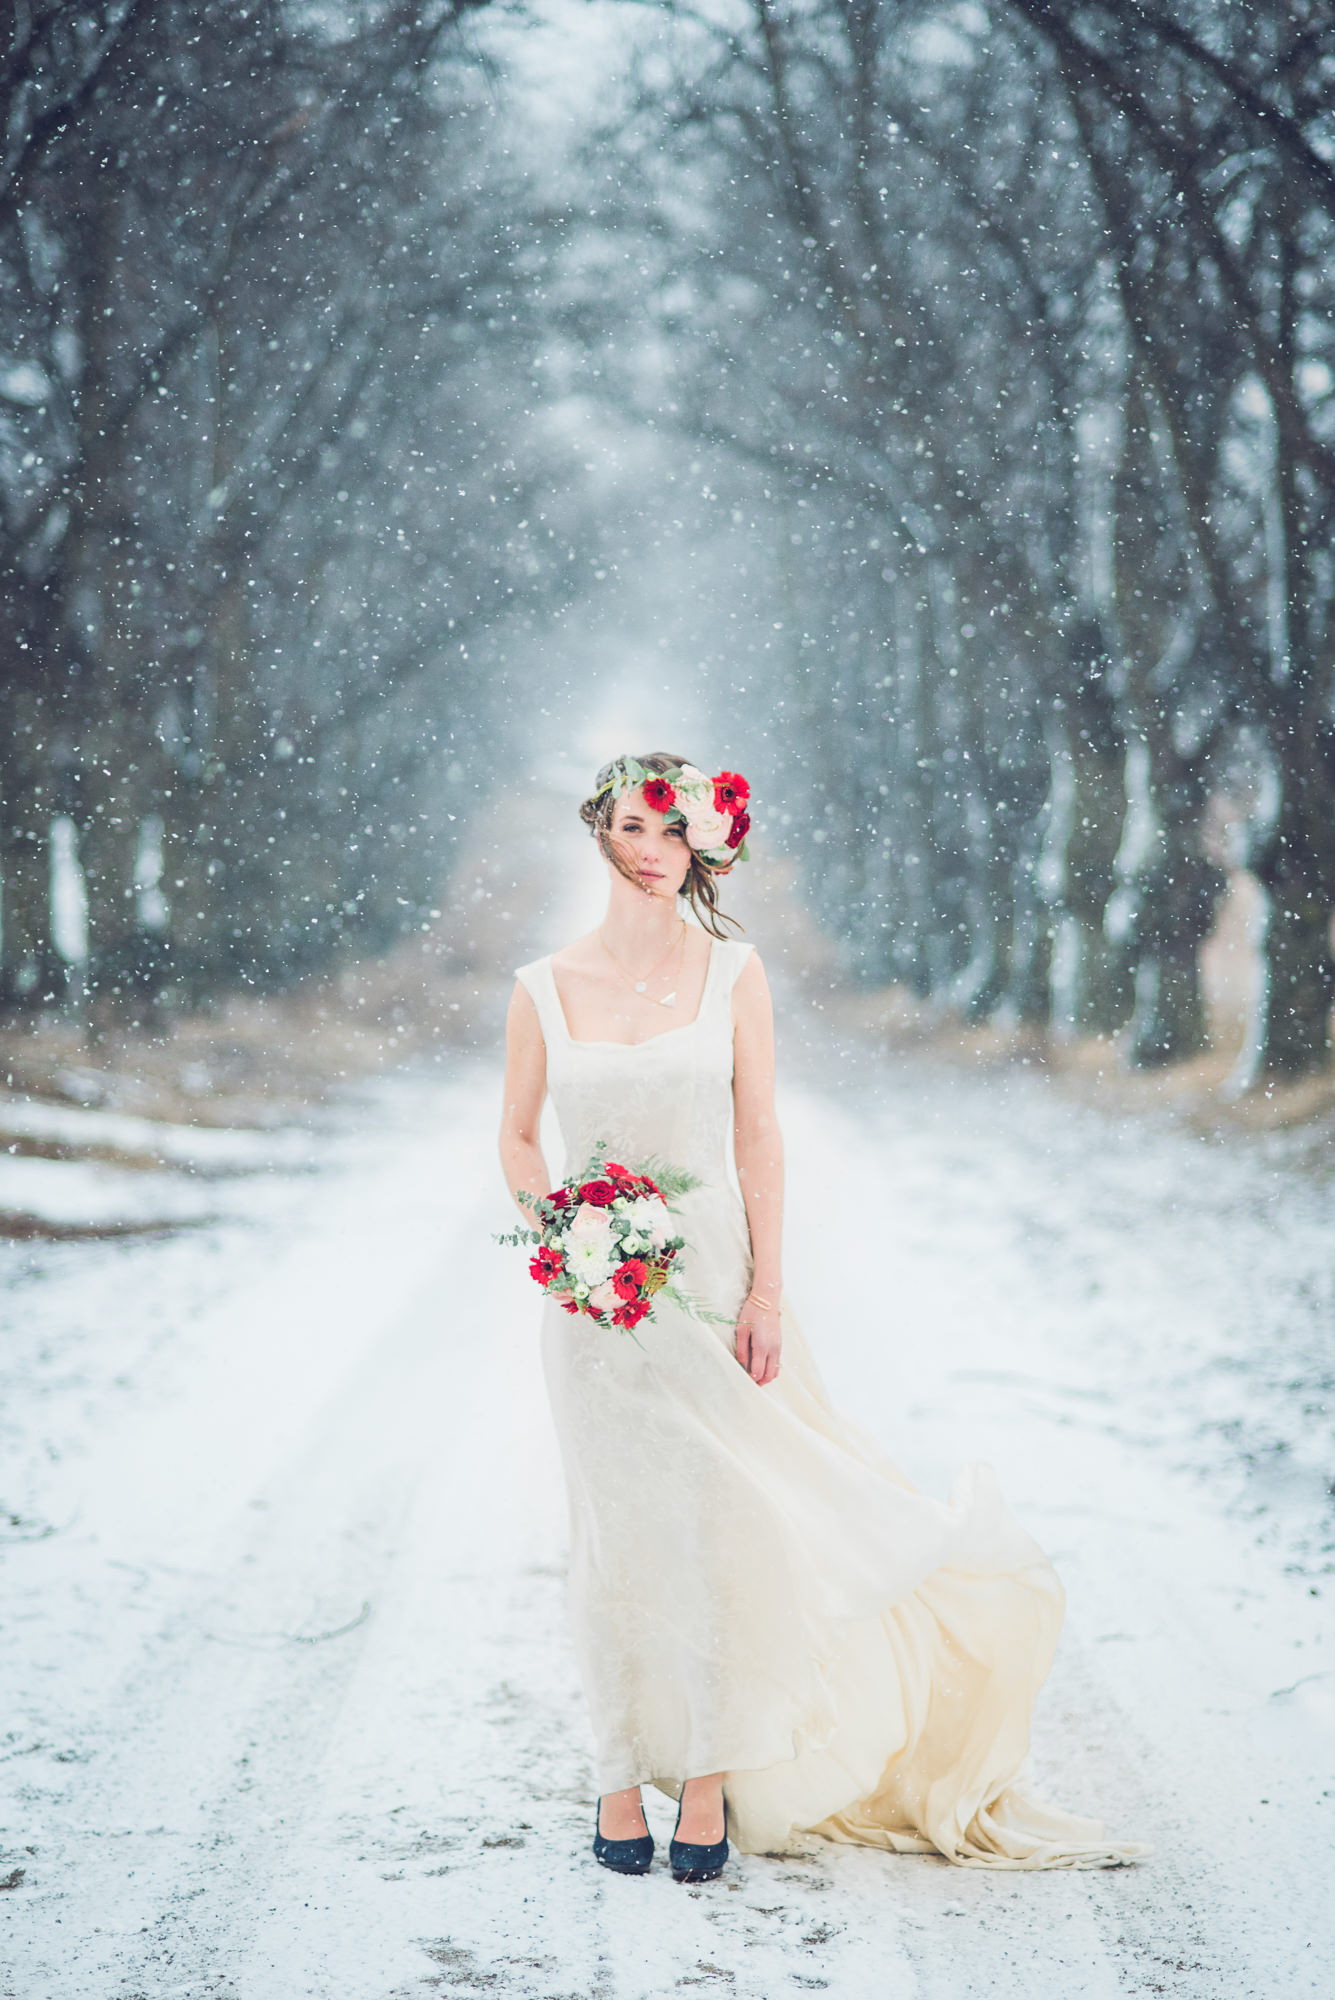 Winter wedding bride wearing sleeveless dress with rose bouquet photo by Nordica Photography